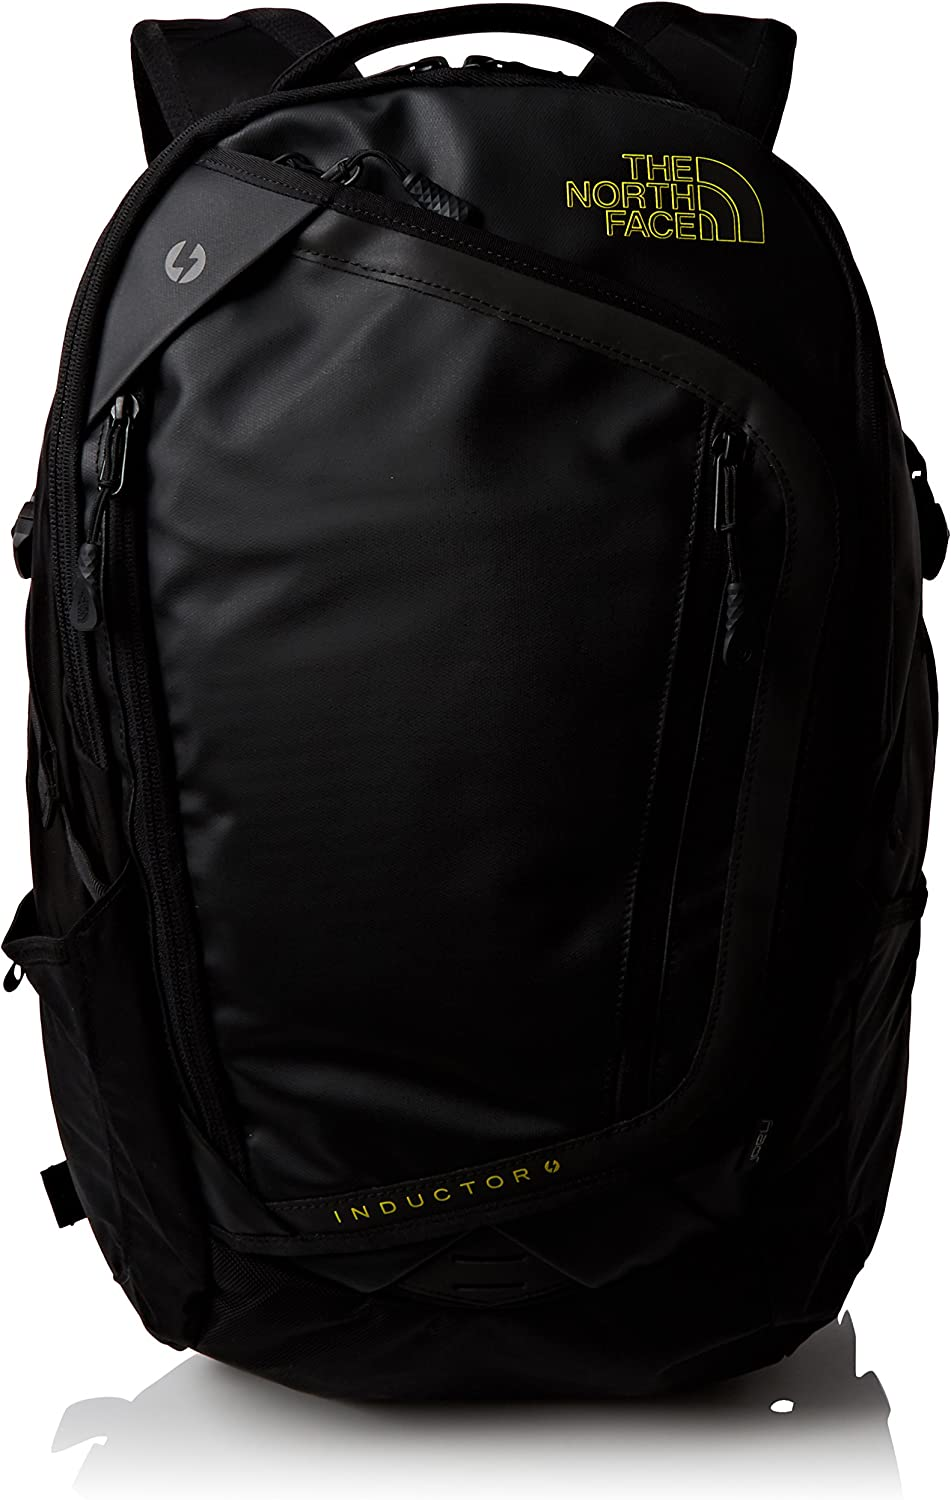 The North Face INDUCTOR Charged Backpack 31 L TNF Black for